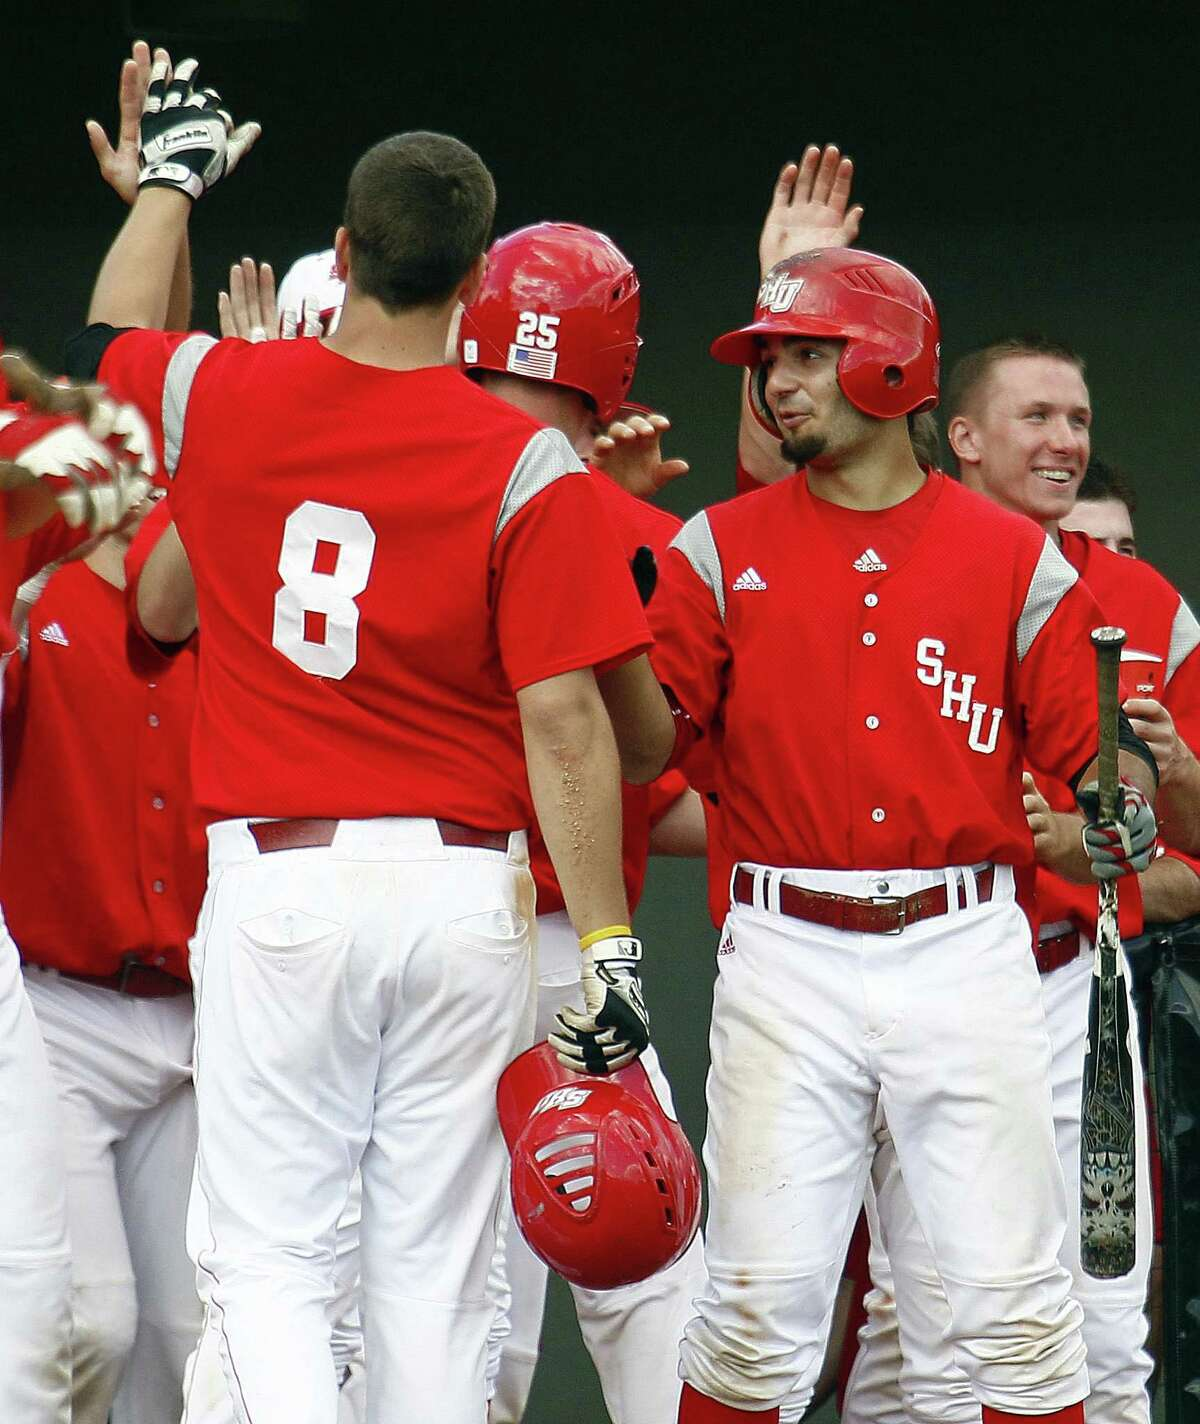 Sacred Heart University baseball players during an NCAA college baseball tournament regional game against UNC Wilmington in Raleigh, N.C., June 2, 2012.